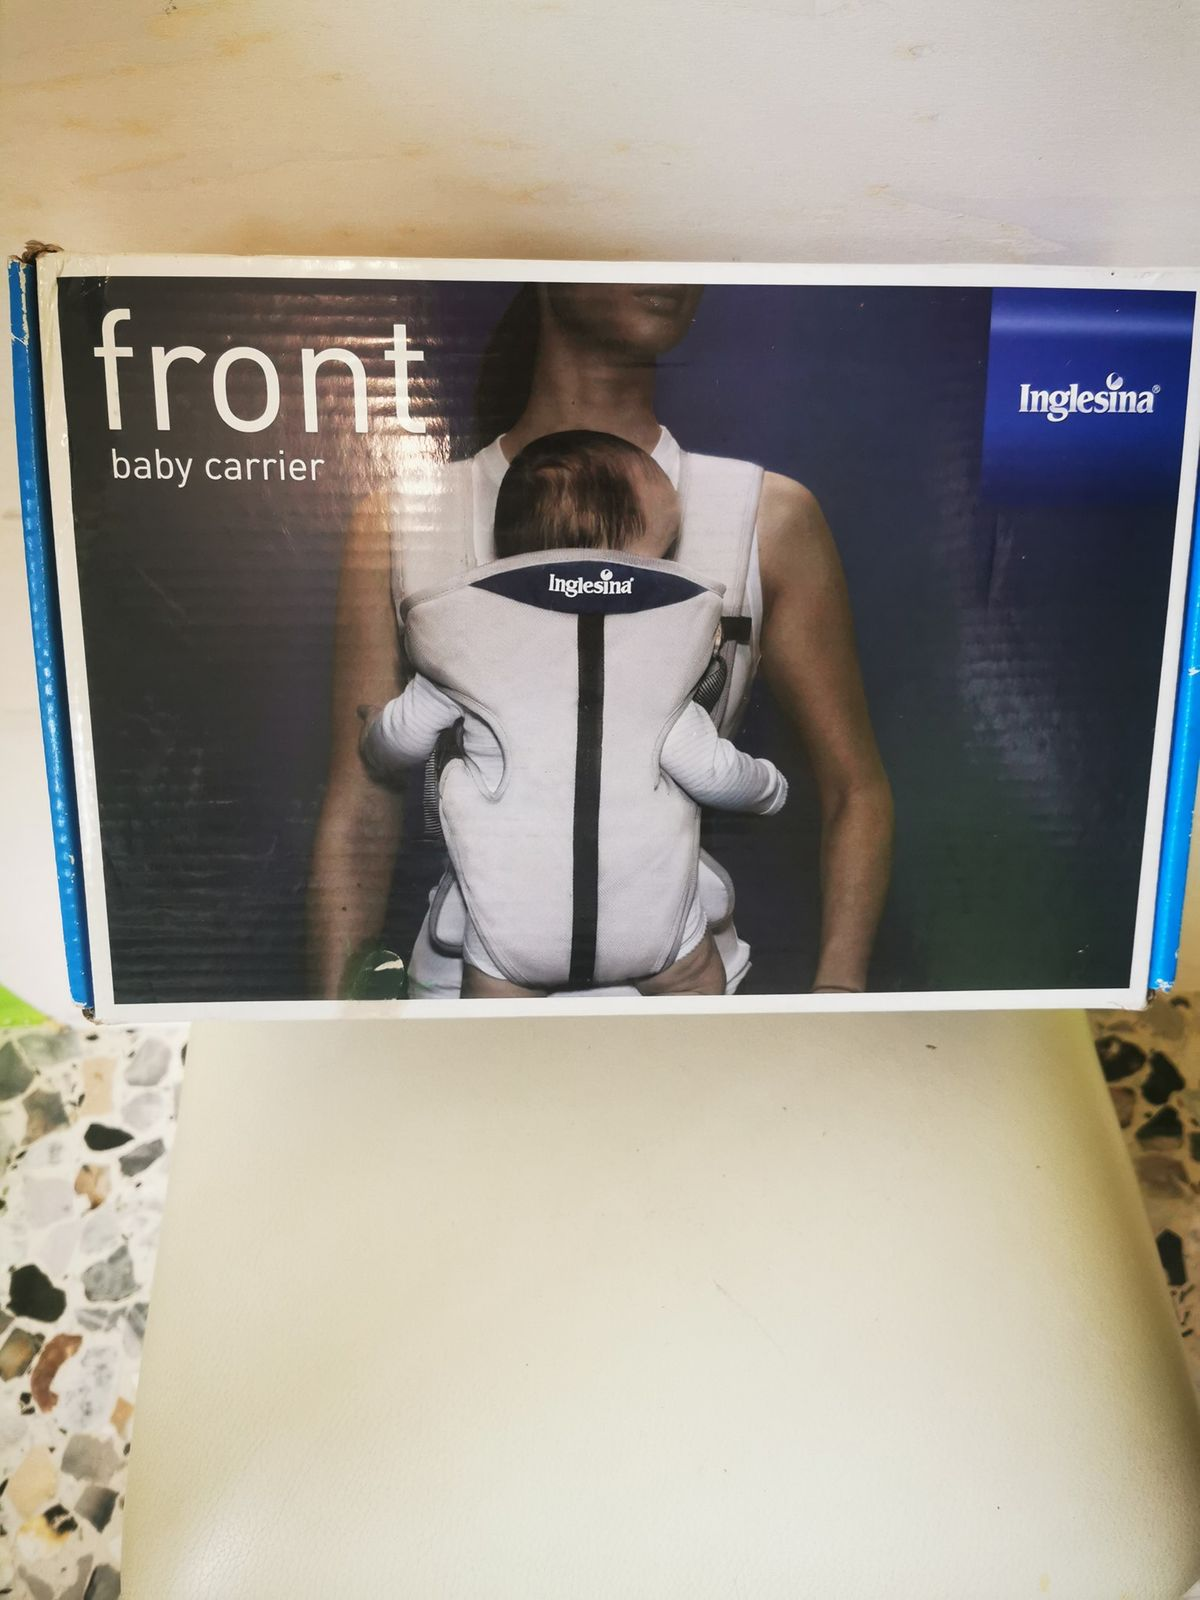 Front baby carrier, inglesina 14,00